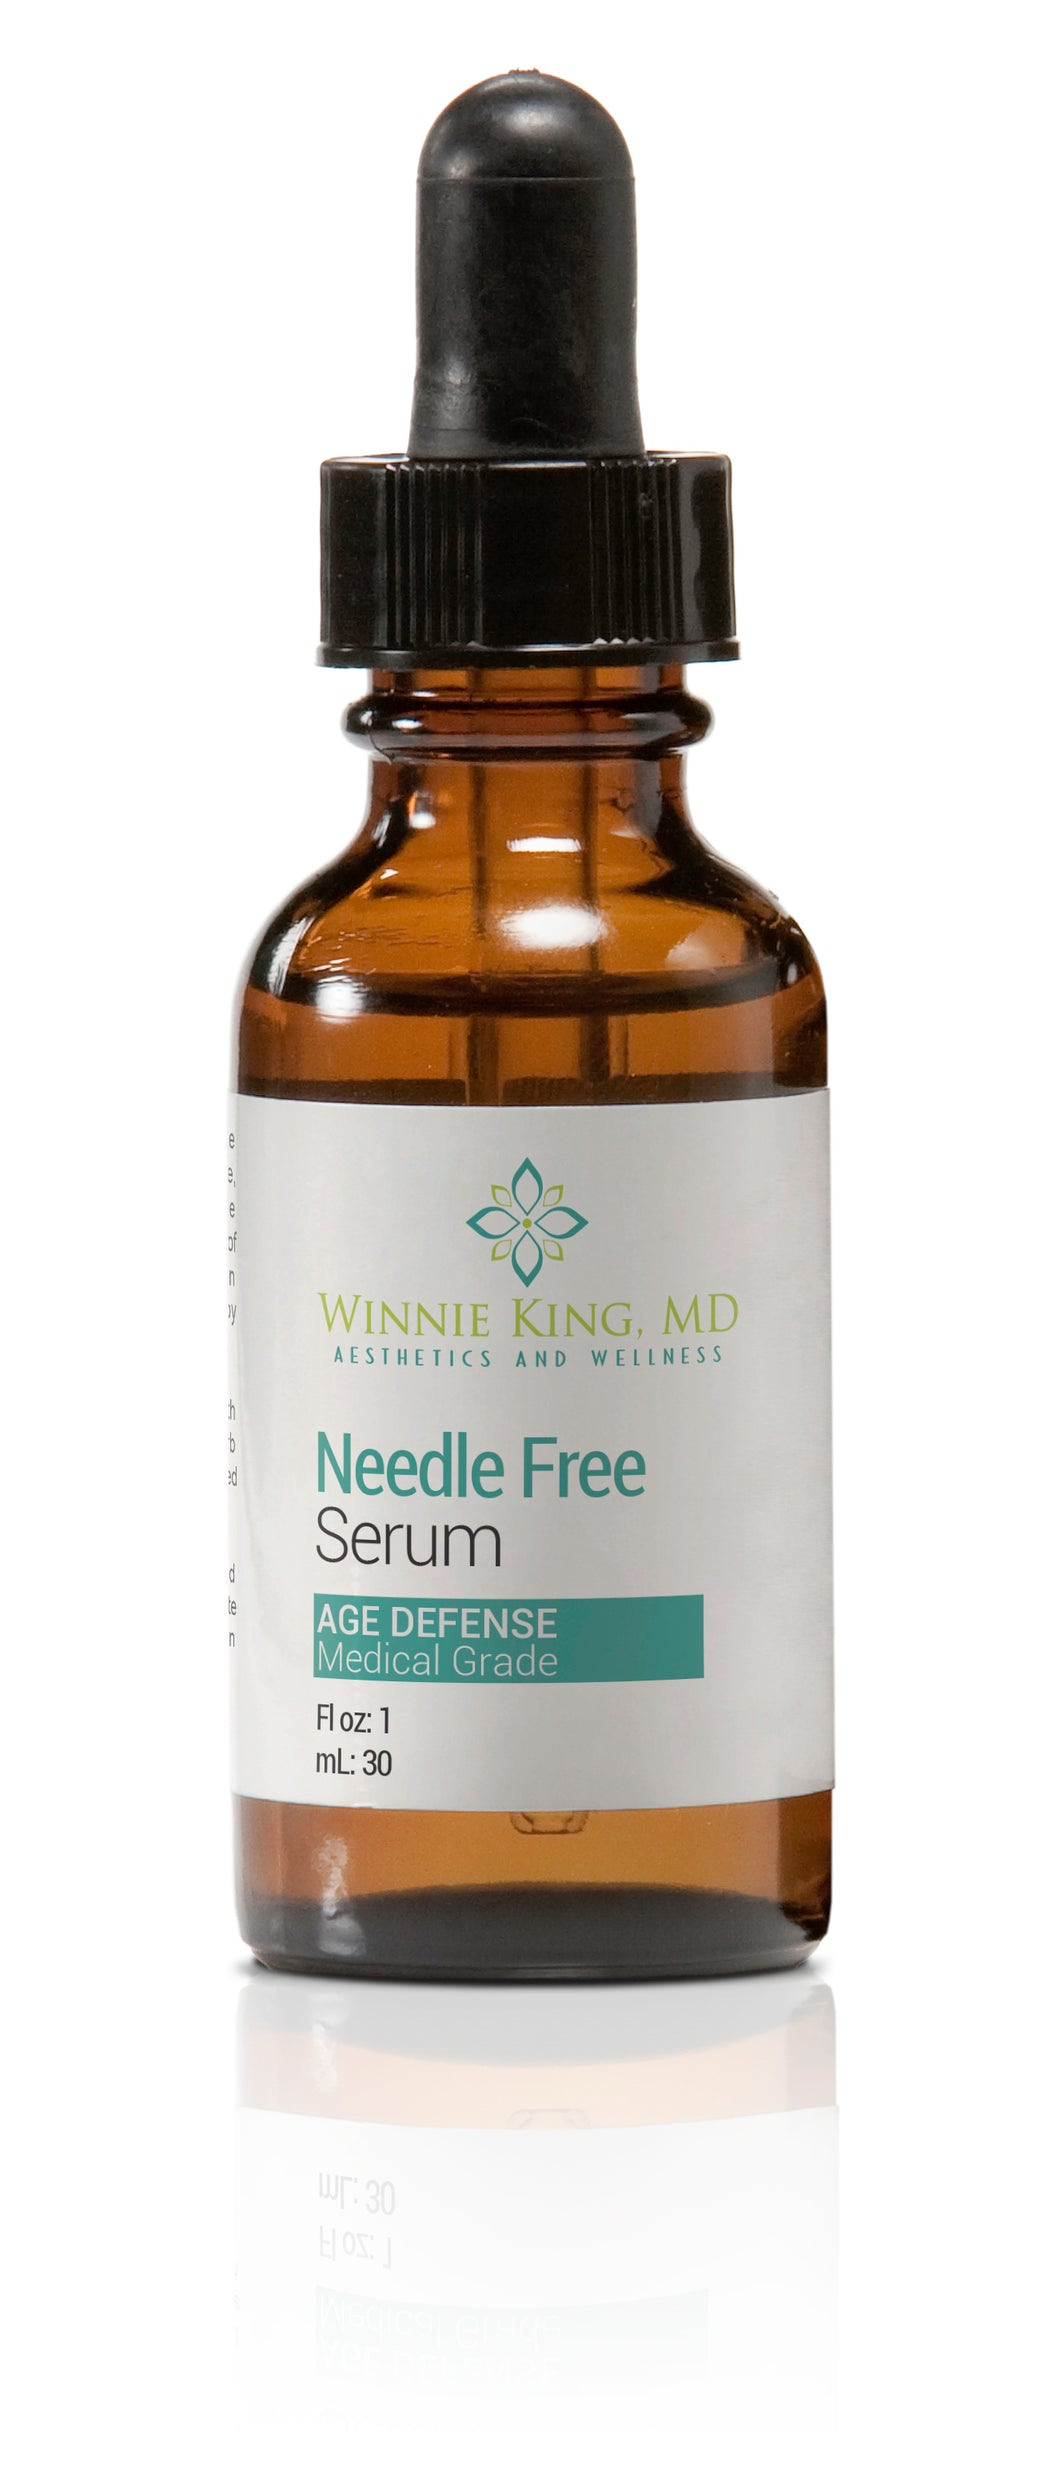 NEEDLE FREE SERUM